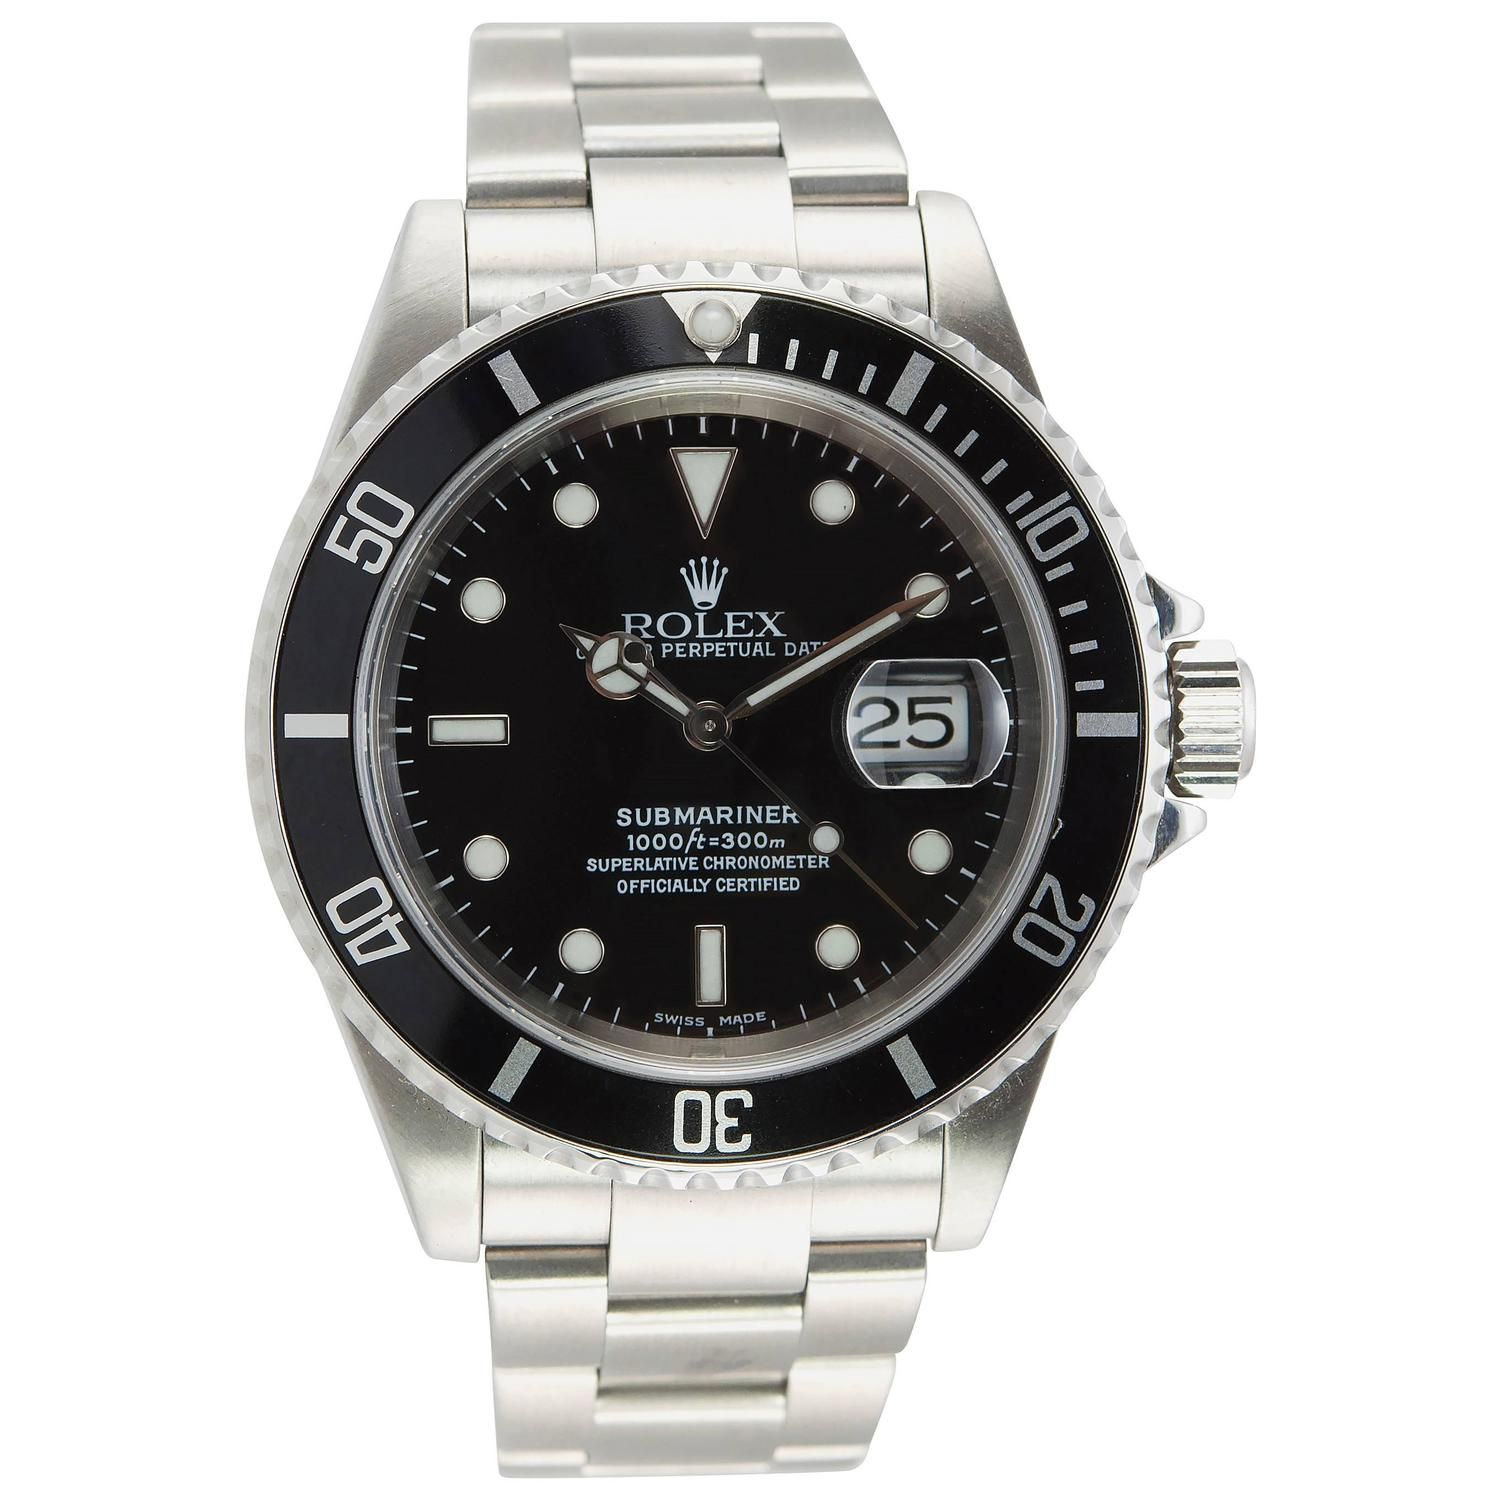 Rolex Stainless Steel Submariner Wristwatch Ref 16610 #stainlesssteelrolex